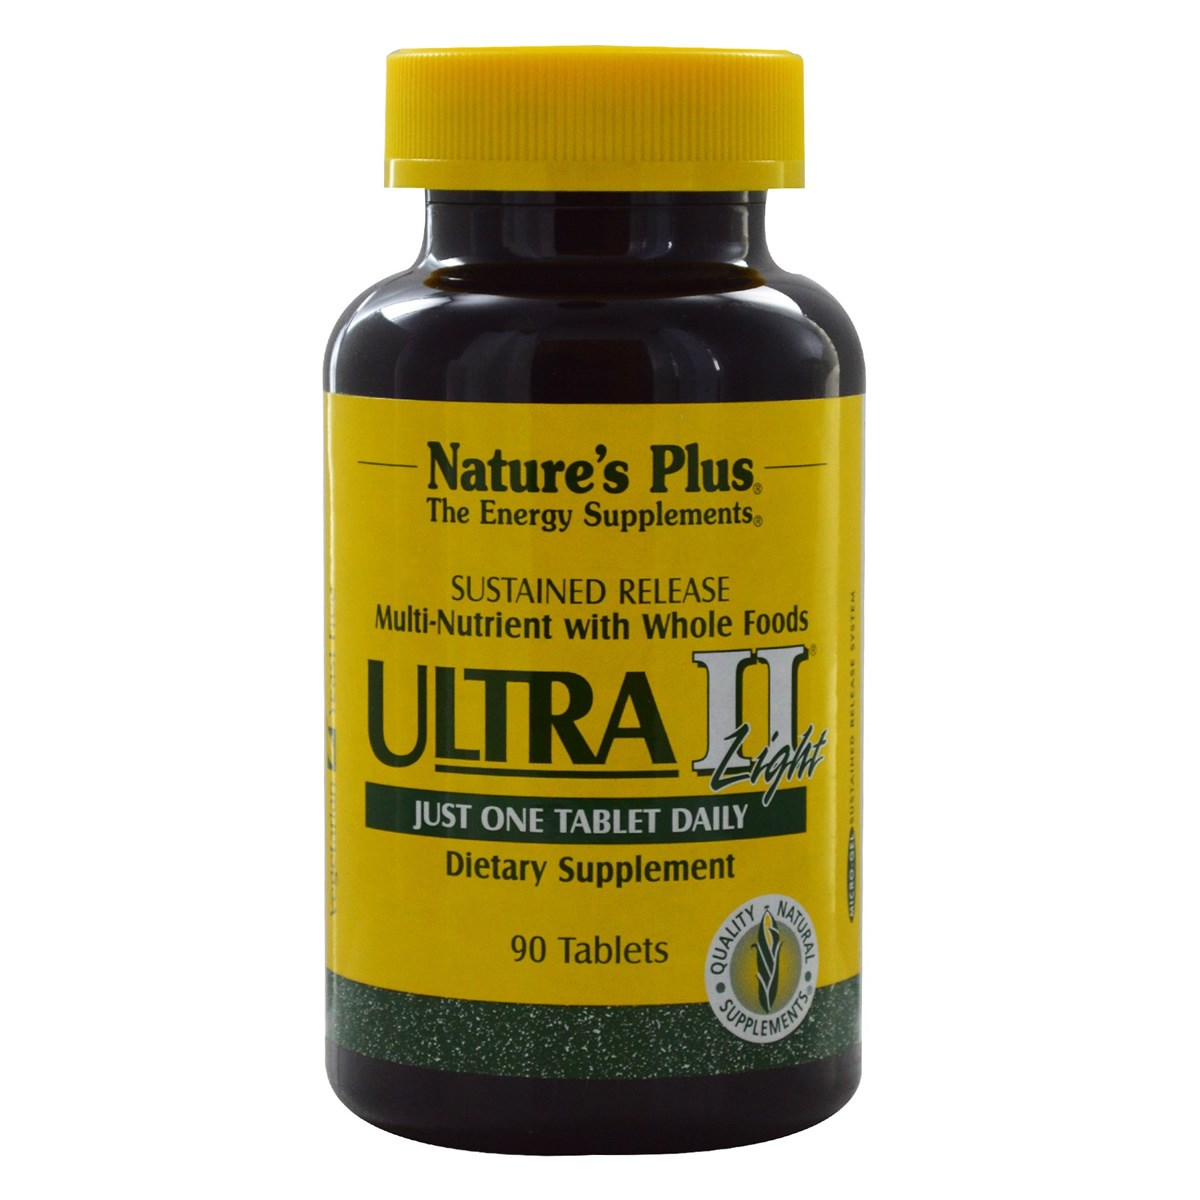 Natures Plus Ultra II Light Sustained Release Tablets